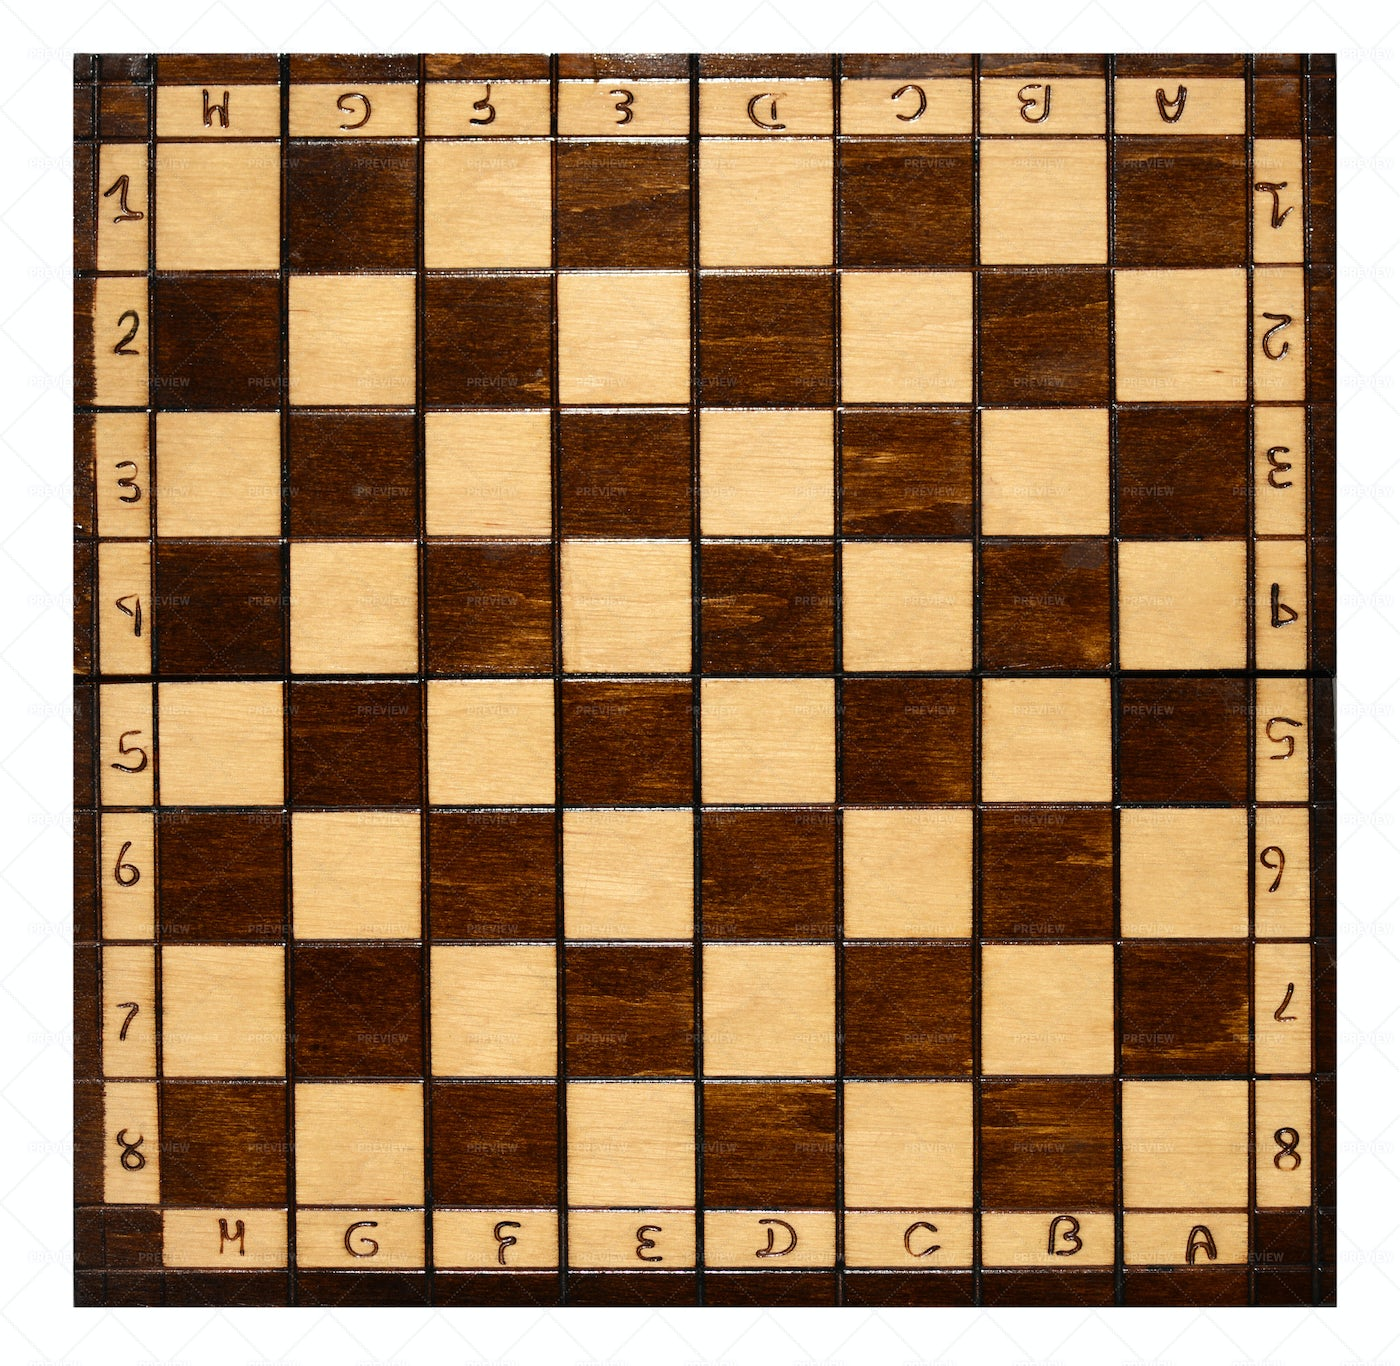 Old Wooden Chess Board: Stock Photos